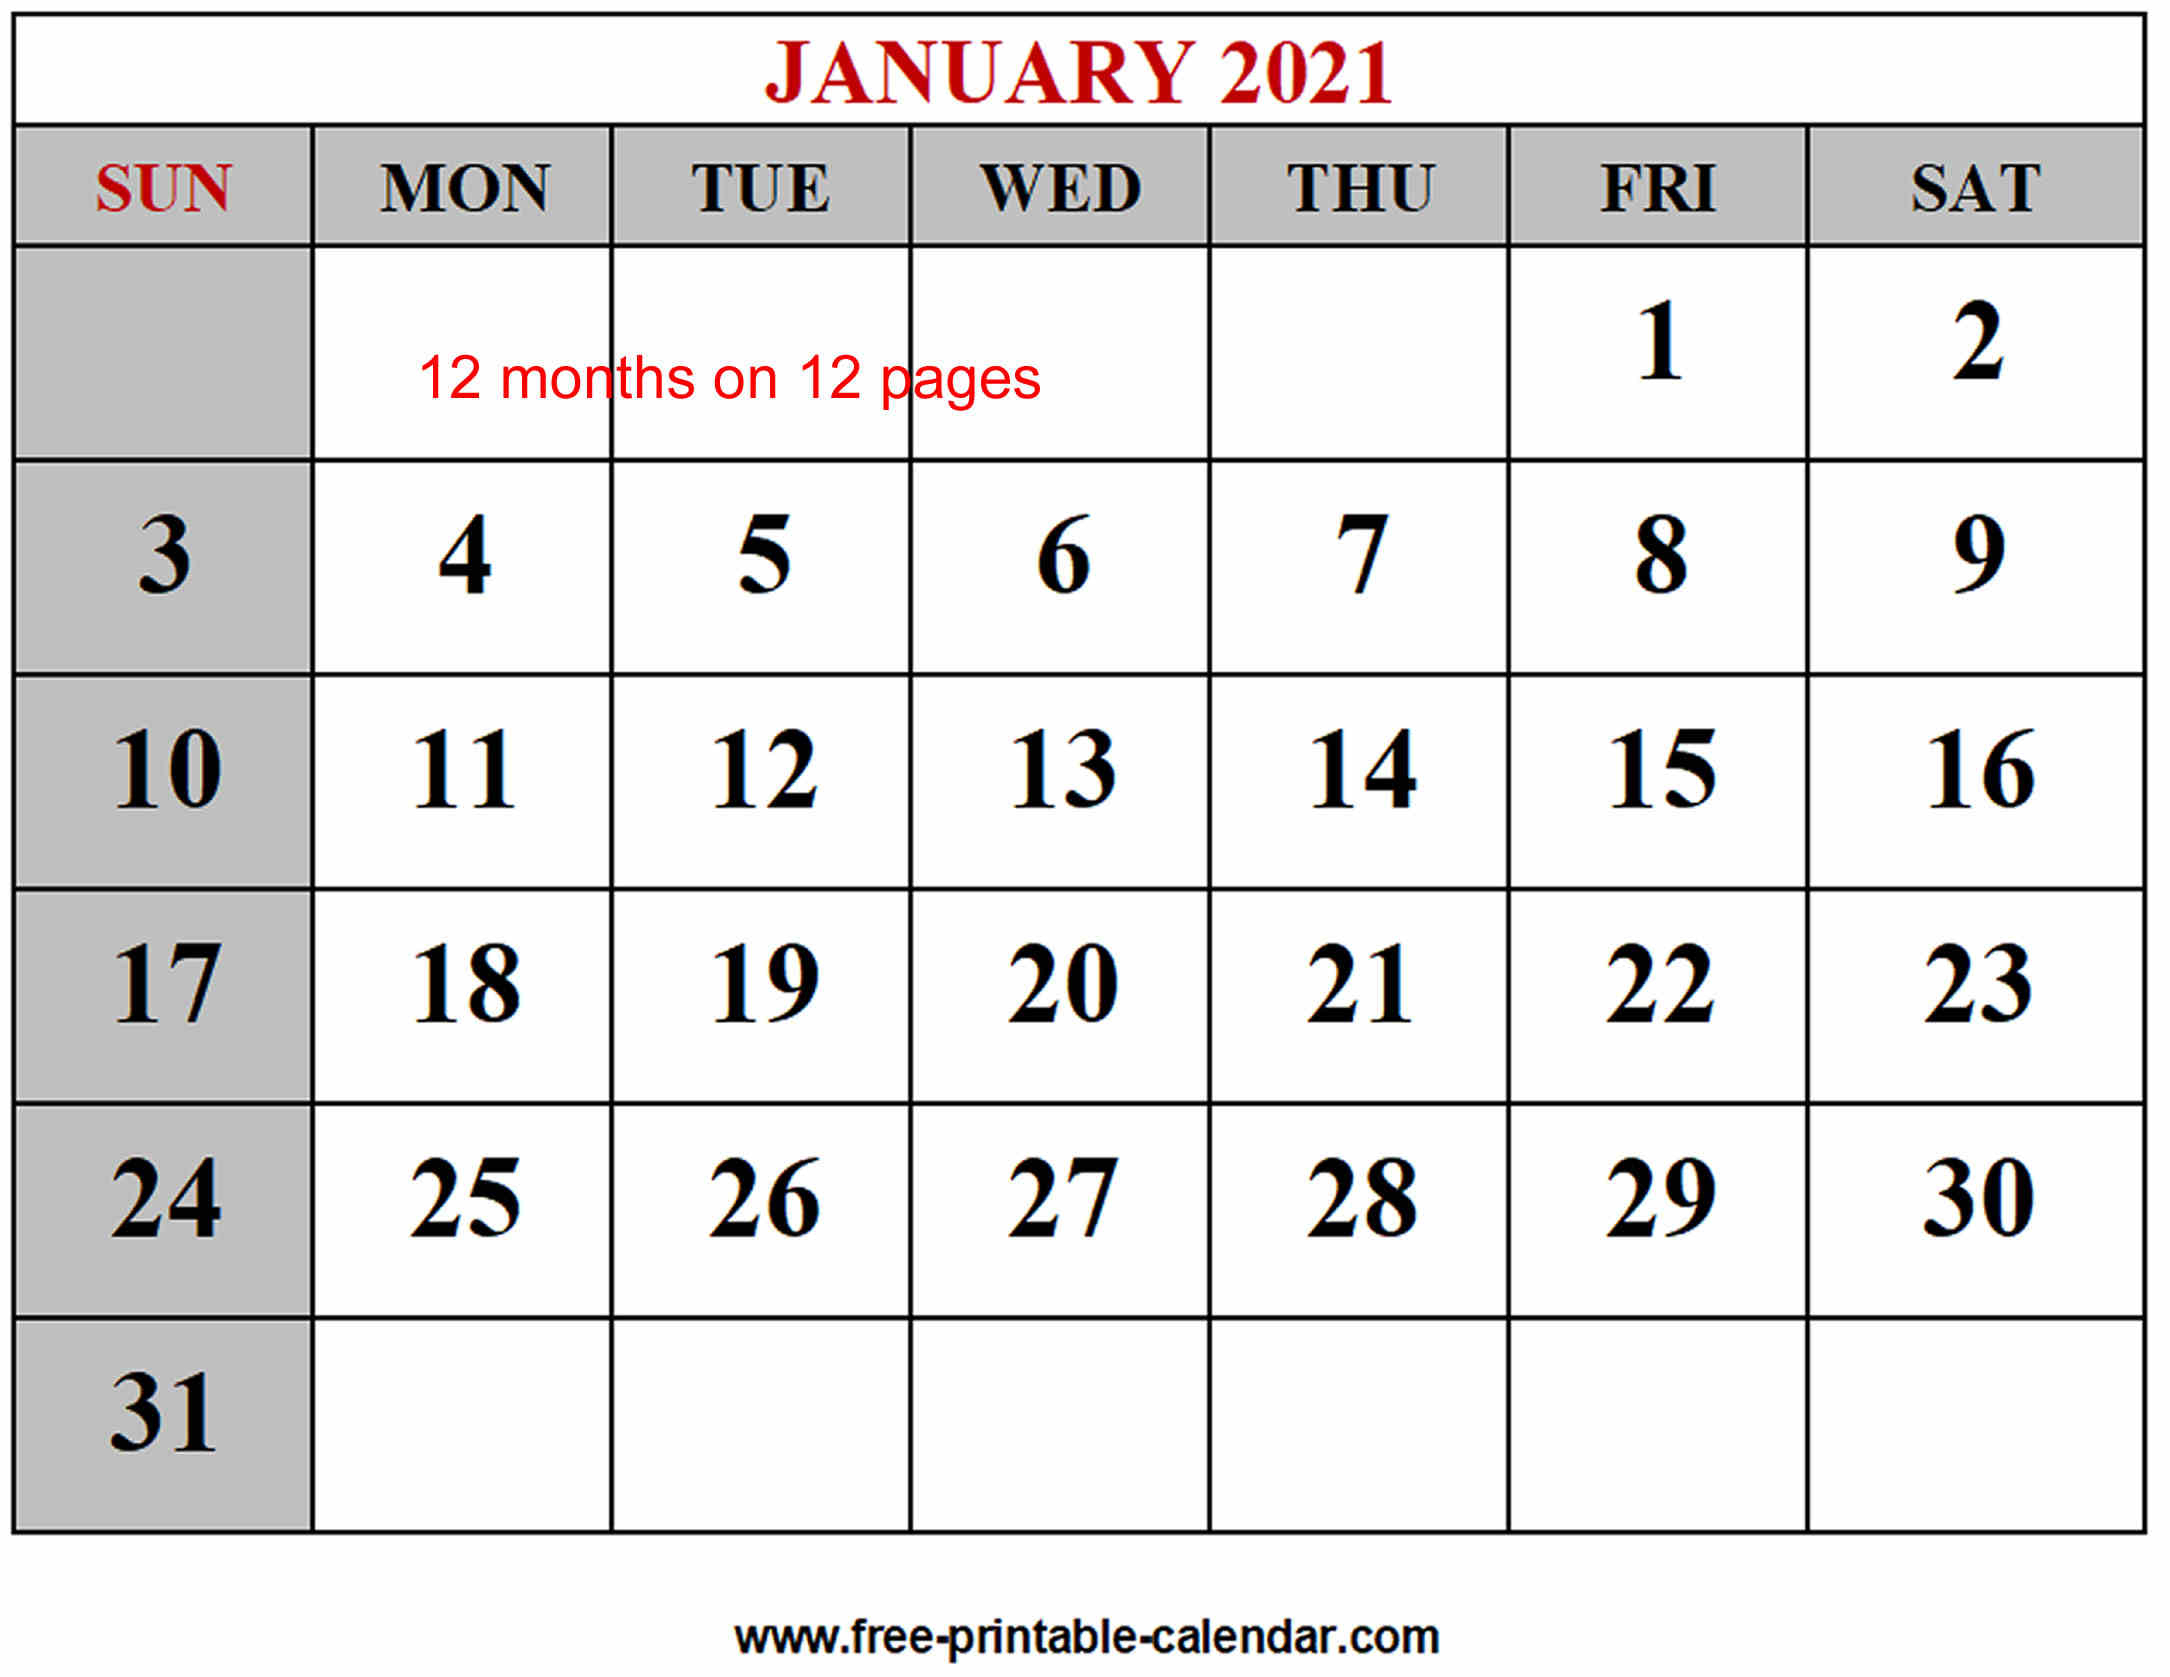 Free 2021 Yearly Calender Template  Free Printable Year